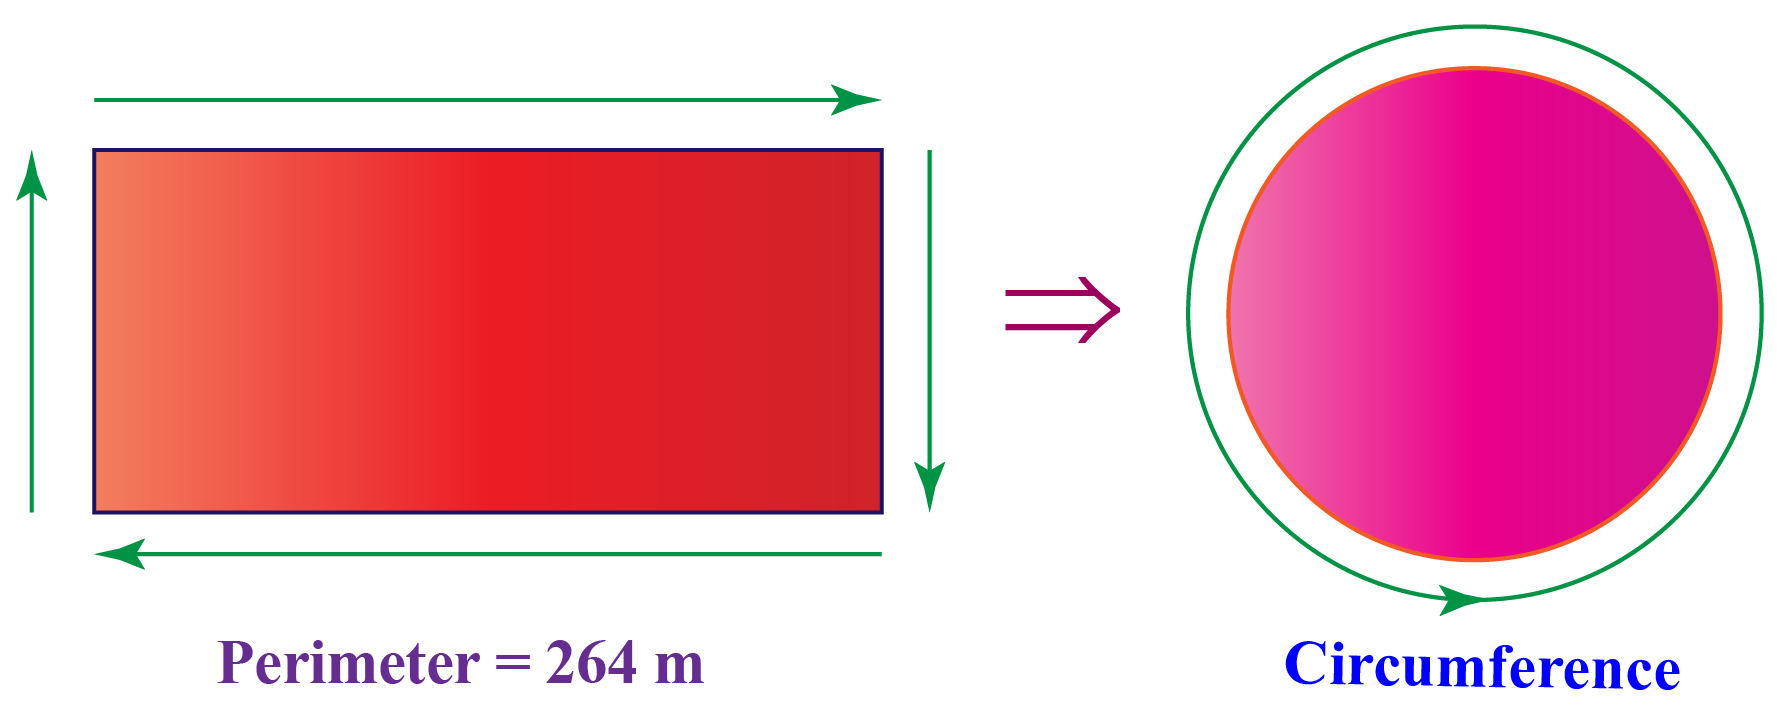 Wire bent from a rectangle of perimeter 264 m to form a circle